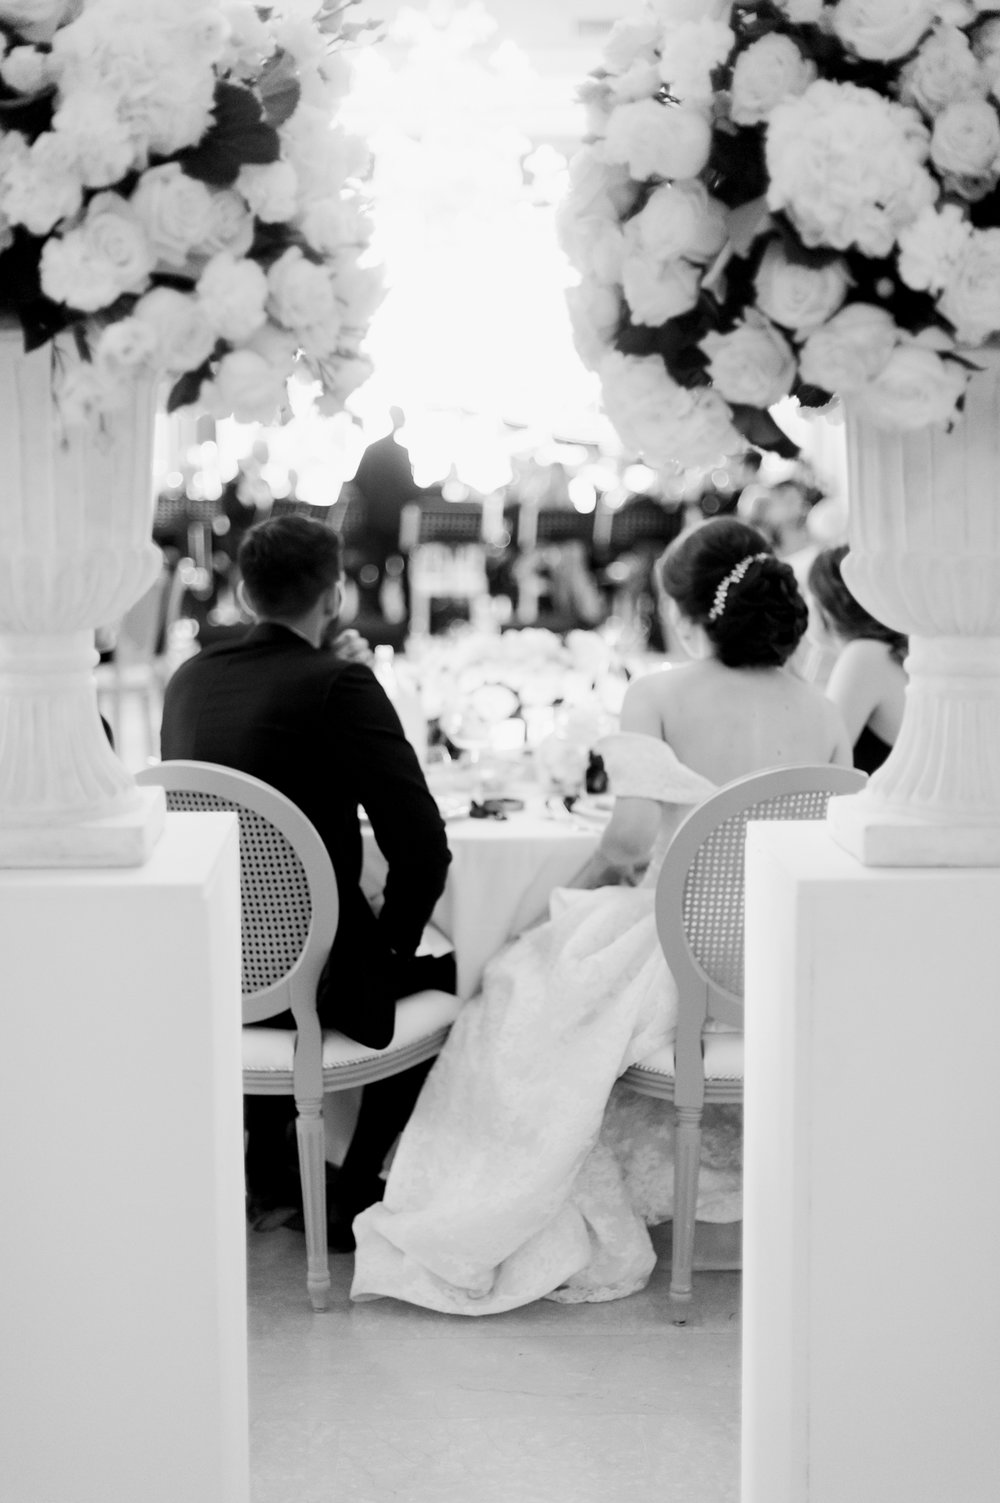 Palace_Villa_Cortine_Hotel_Italian_Wedding_Photographer_Sirmione_AKP-45.jpg